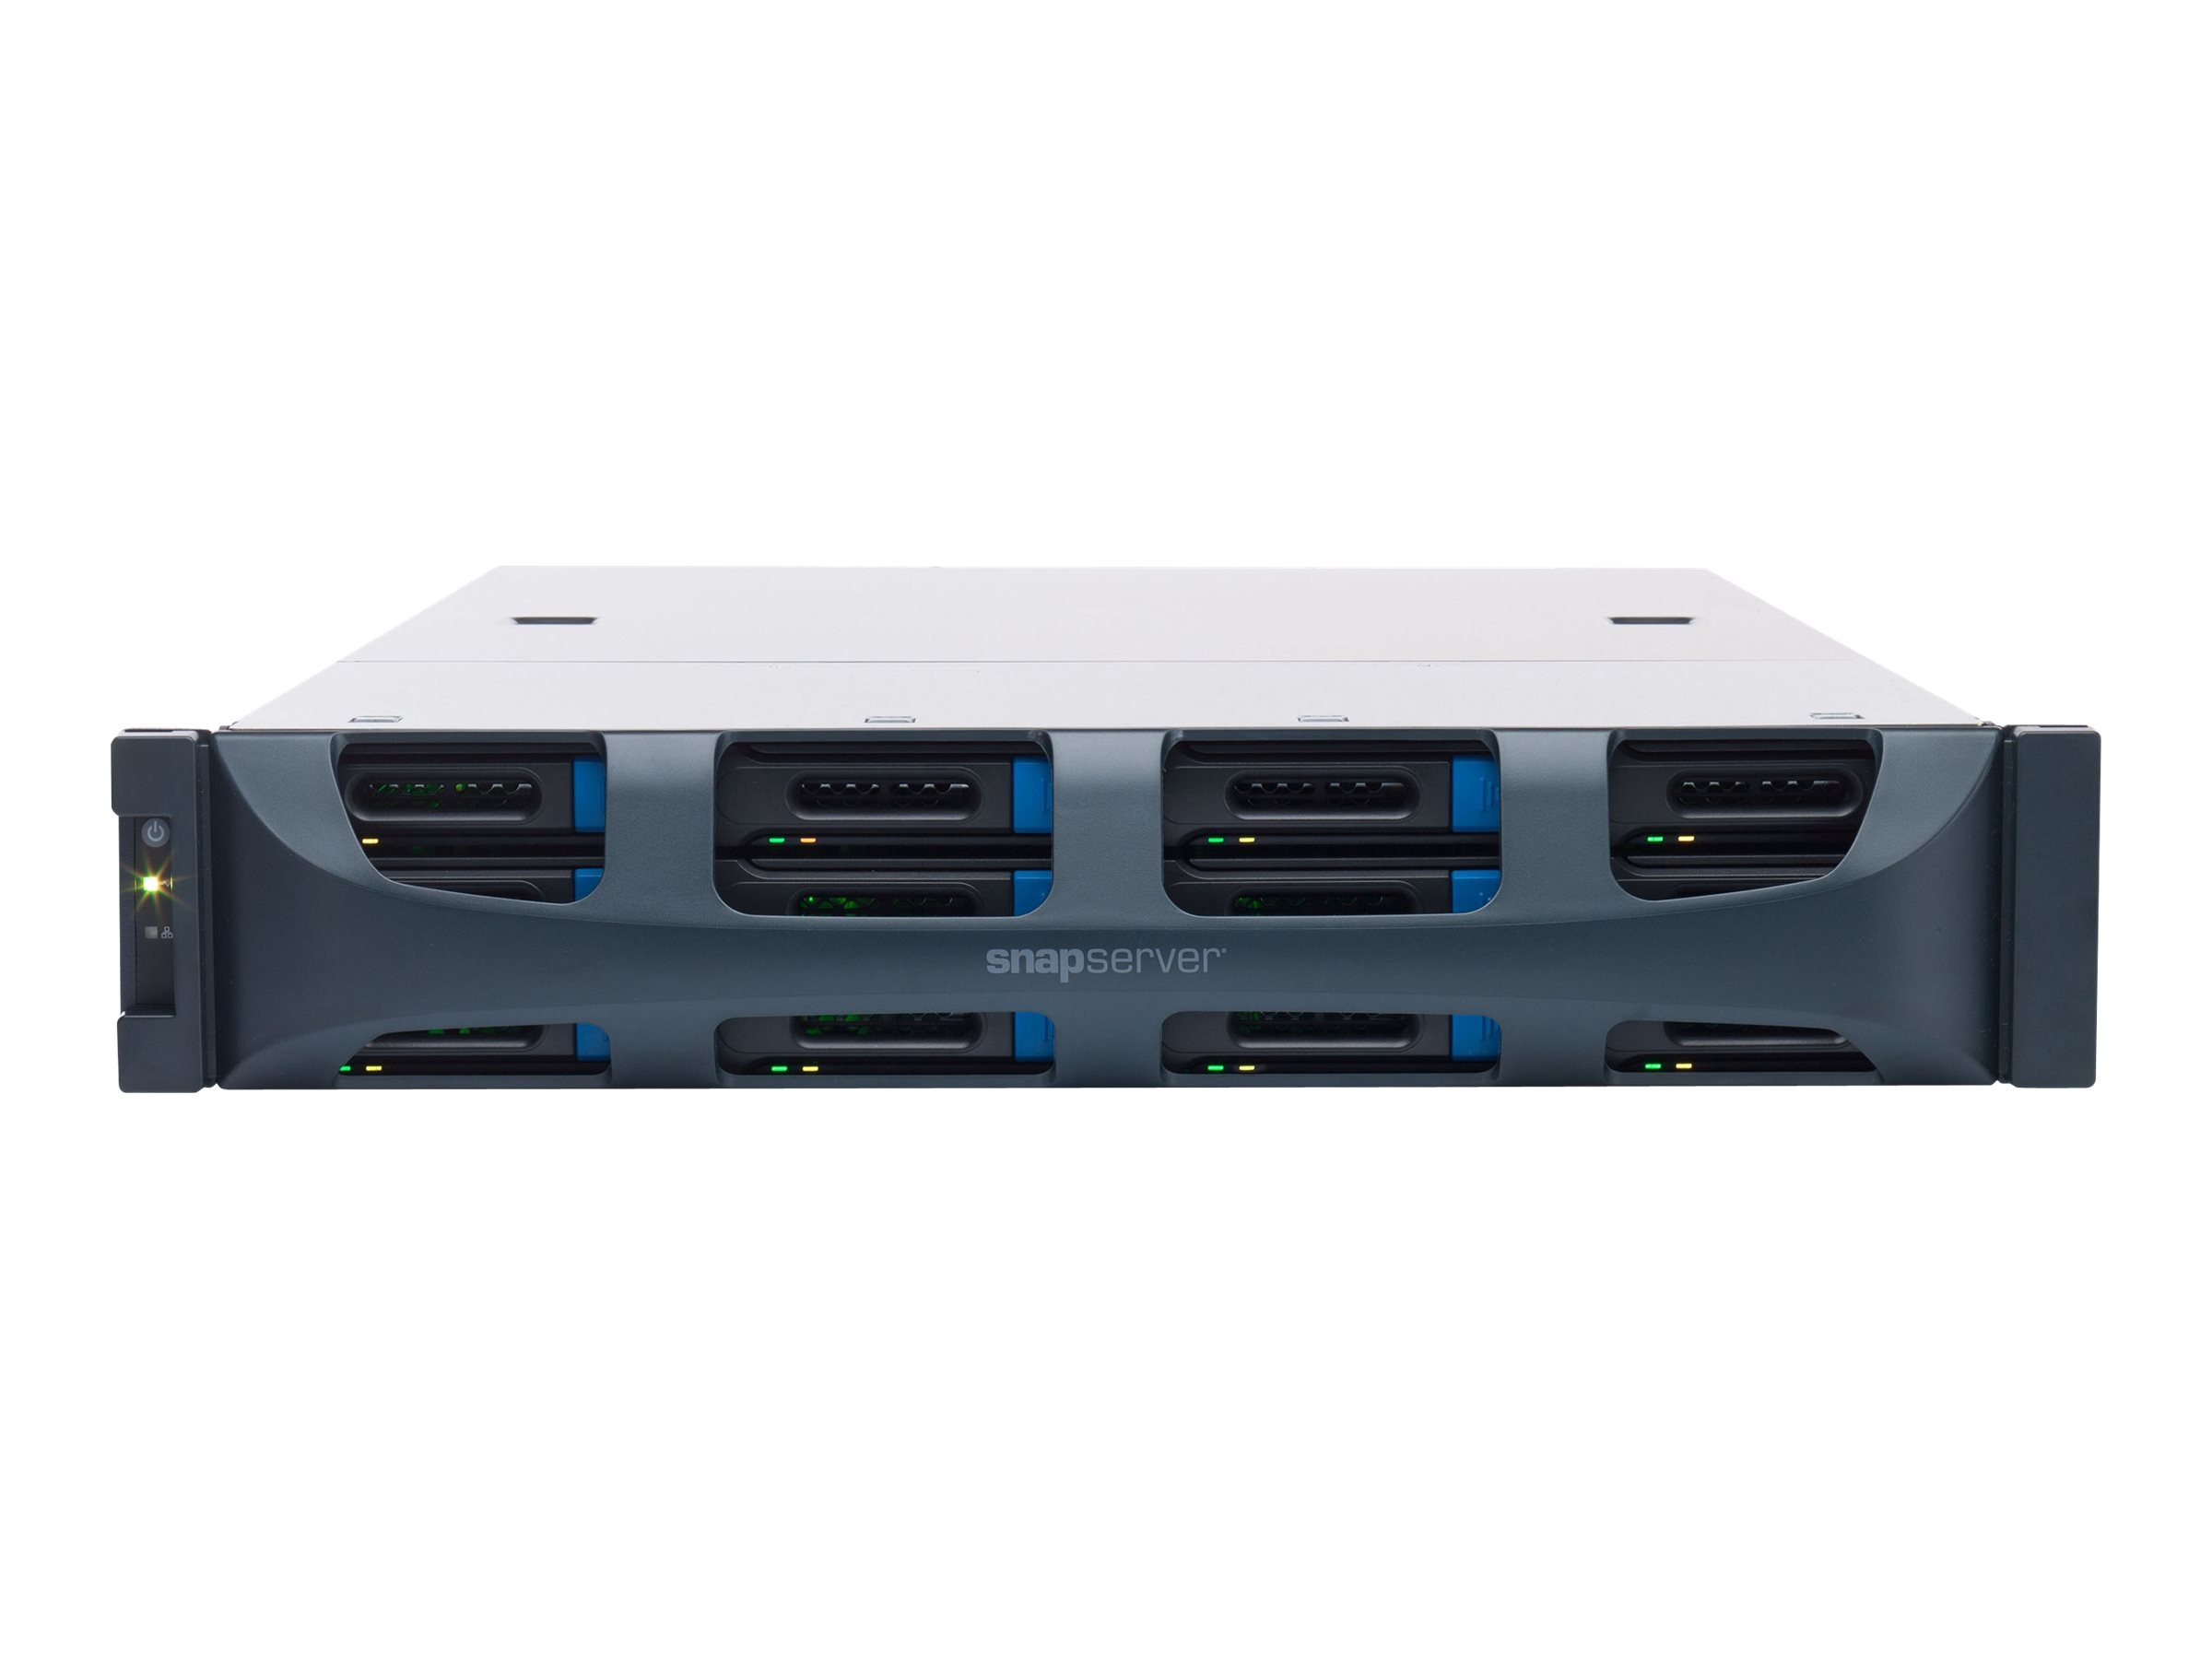 Overland SnapServer XSR 120 NAS 60TB Bundle (12 x 5TB Enterprise SATA Drives), OT-NAS200222, 18129030, Network Attached Storage